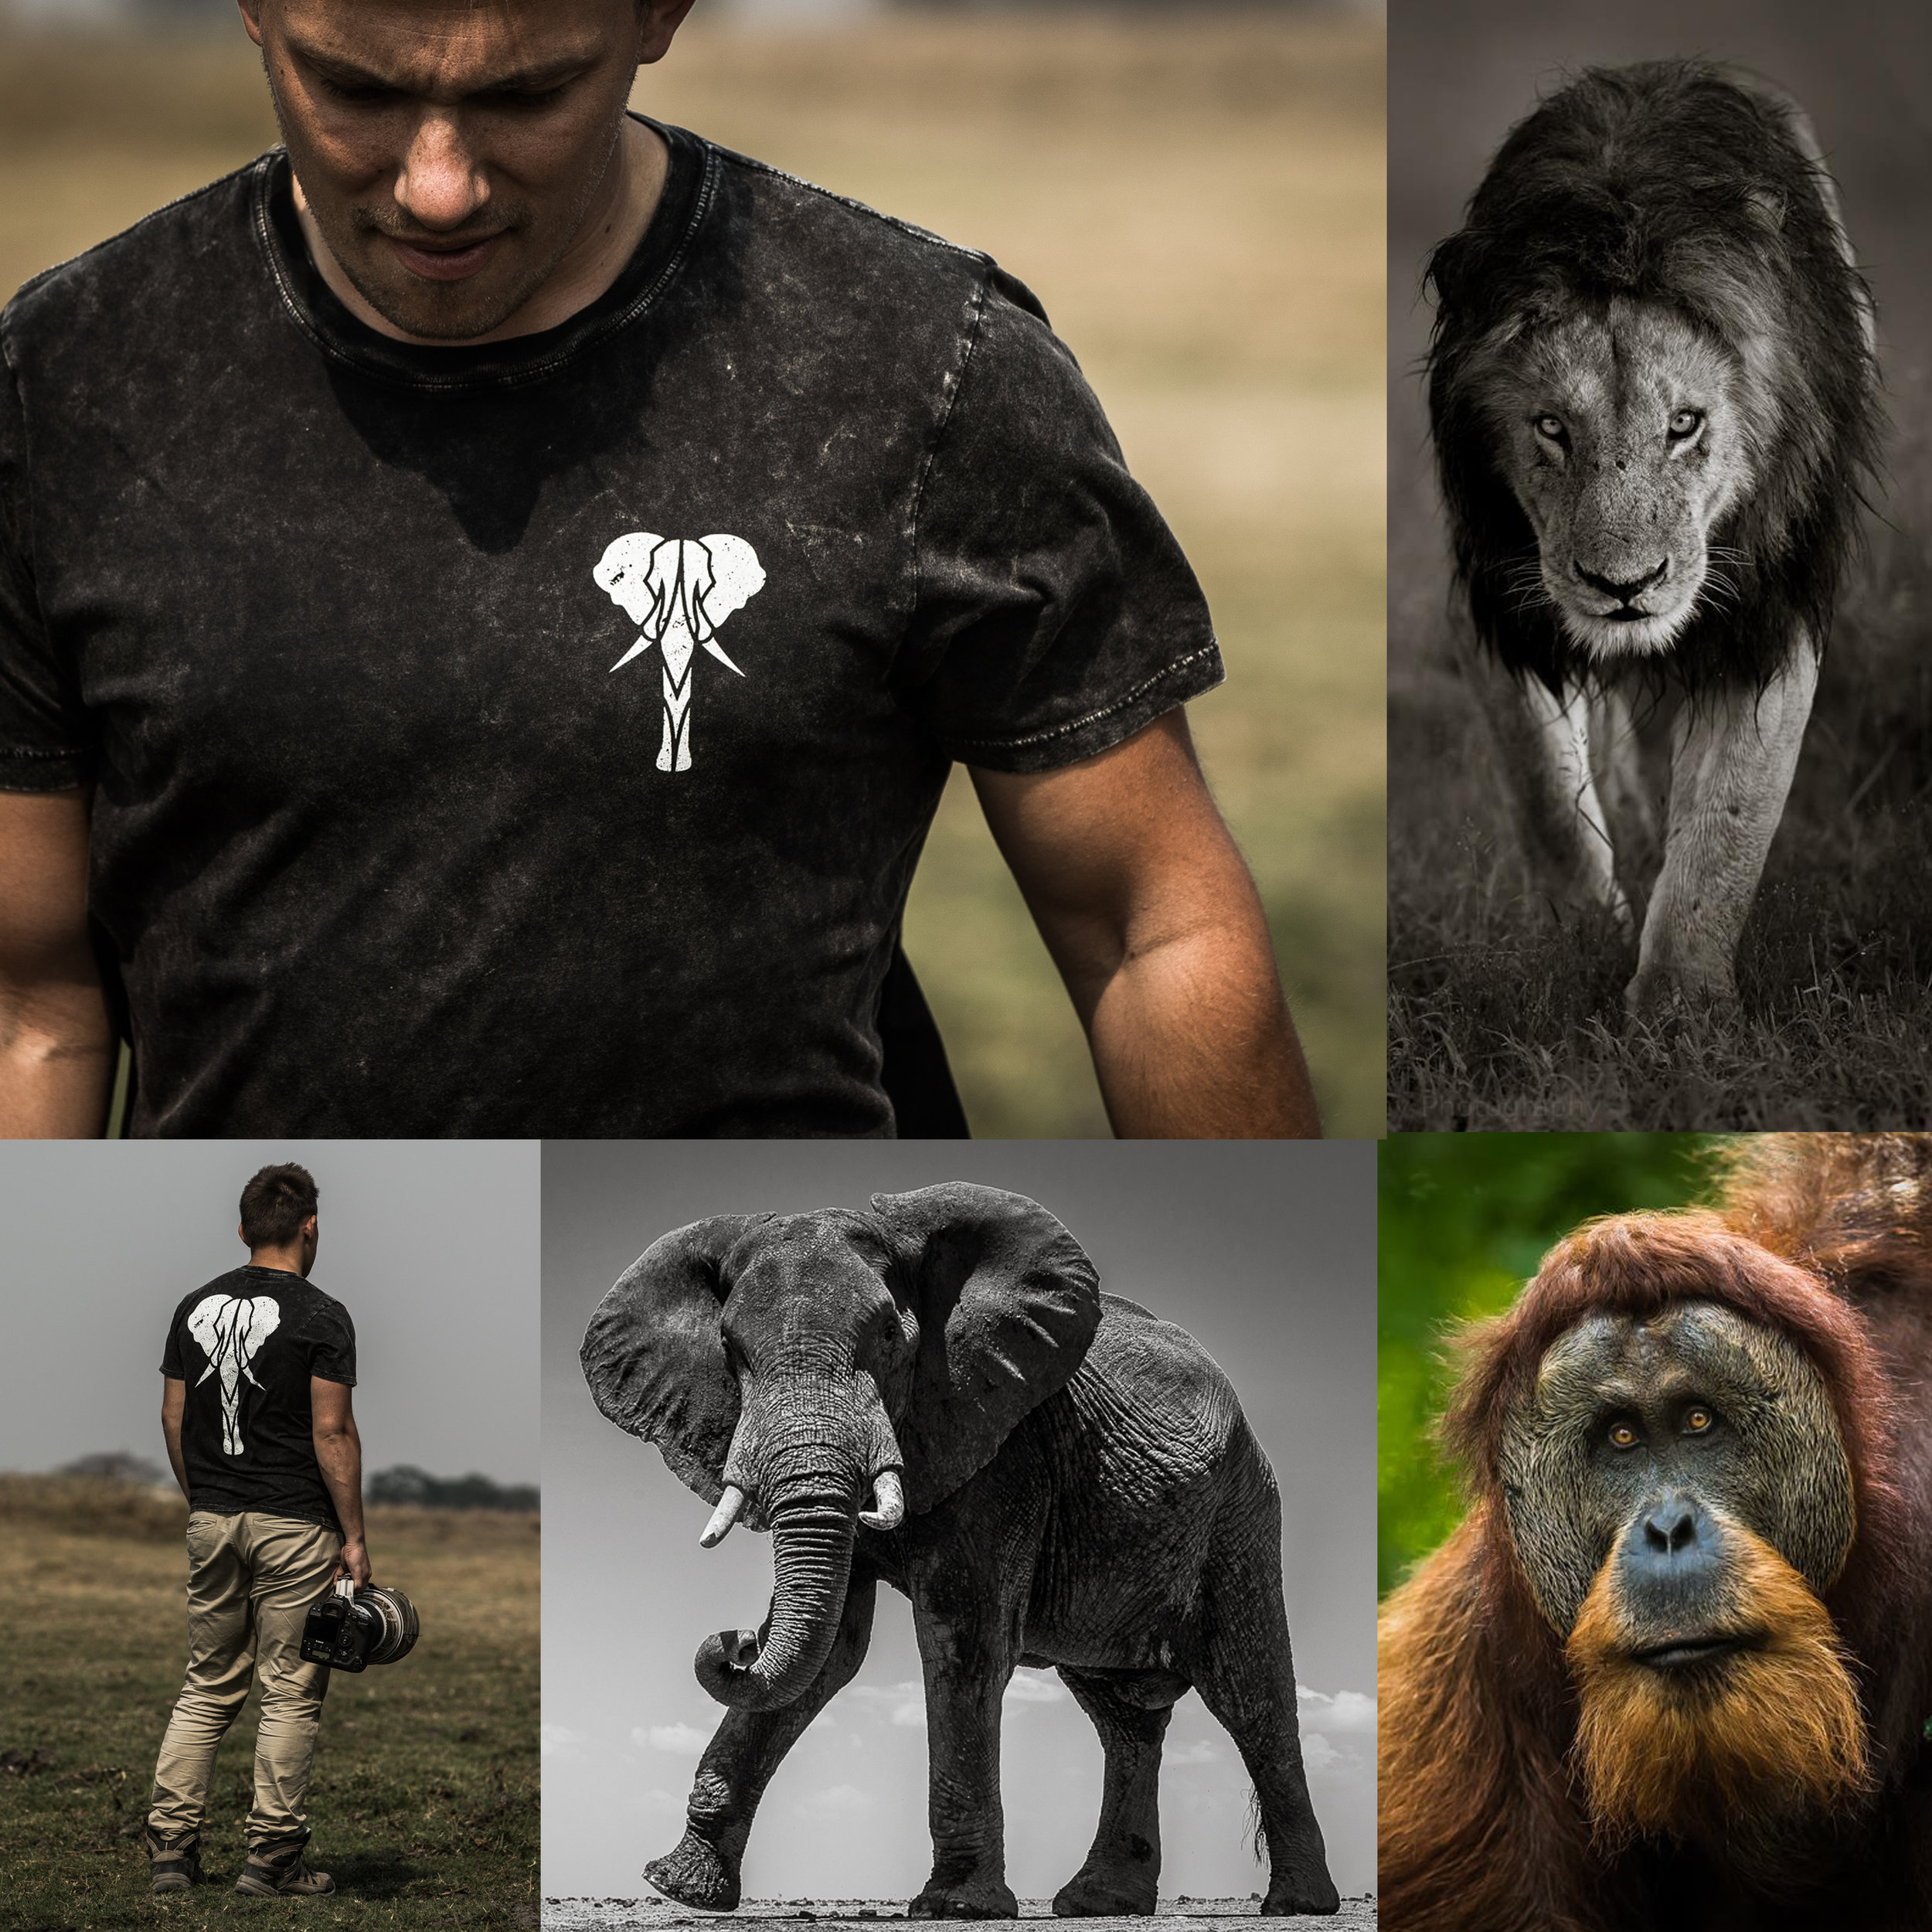 Tom Way - Award Winning Wildlife Photographer   Tom Way is an extremely talented wildlife photographer. He's traveled far and wide to photograph some of the most beautiful animals in the world and even takes budding photographers on safari to get great photos of their own!  Tom wears his Ages Apparel Signature Tee on location as the organic cotton is comfortable and breathable for those long shoot days in the savanna.  Learn more about Tom here >   https://agesapparel.com/magazine/the-tribe-has-talent-tom-way